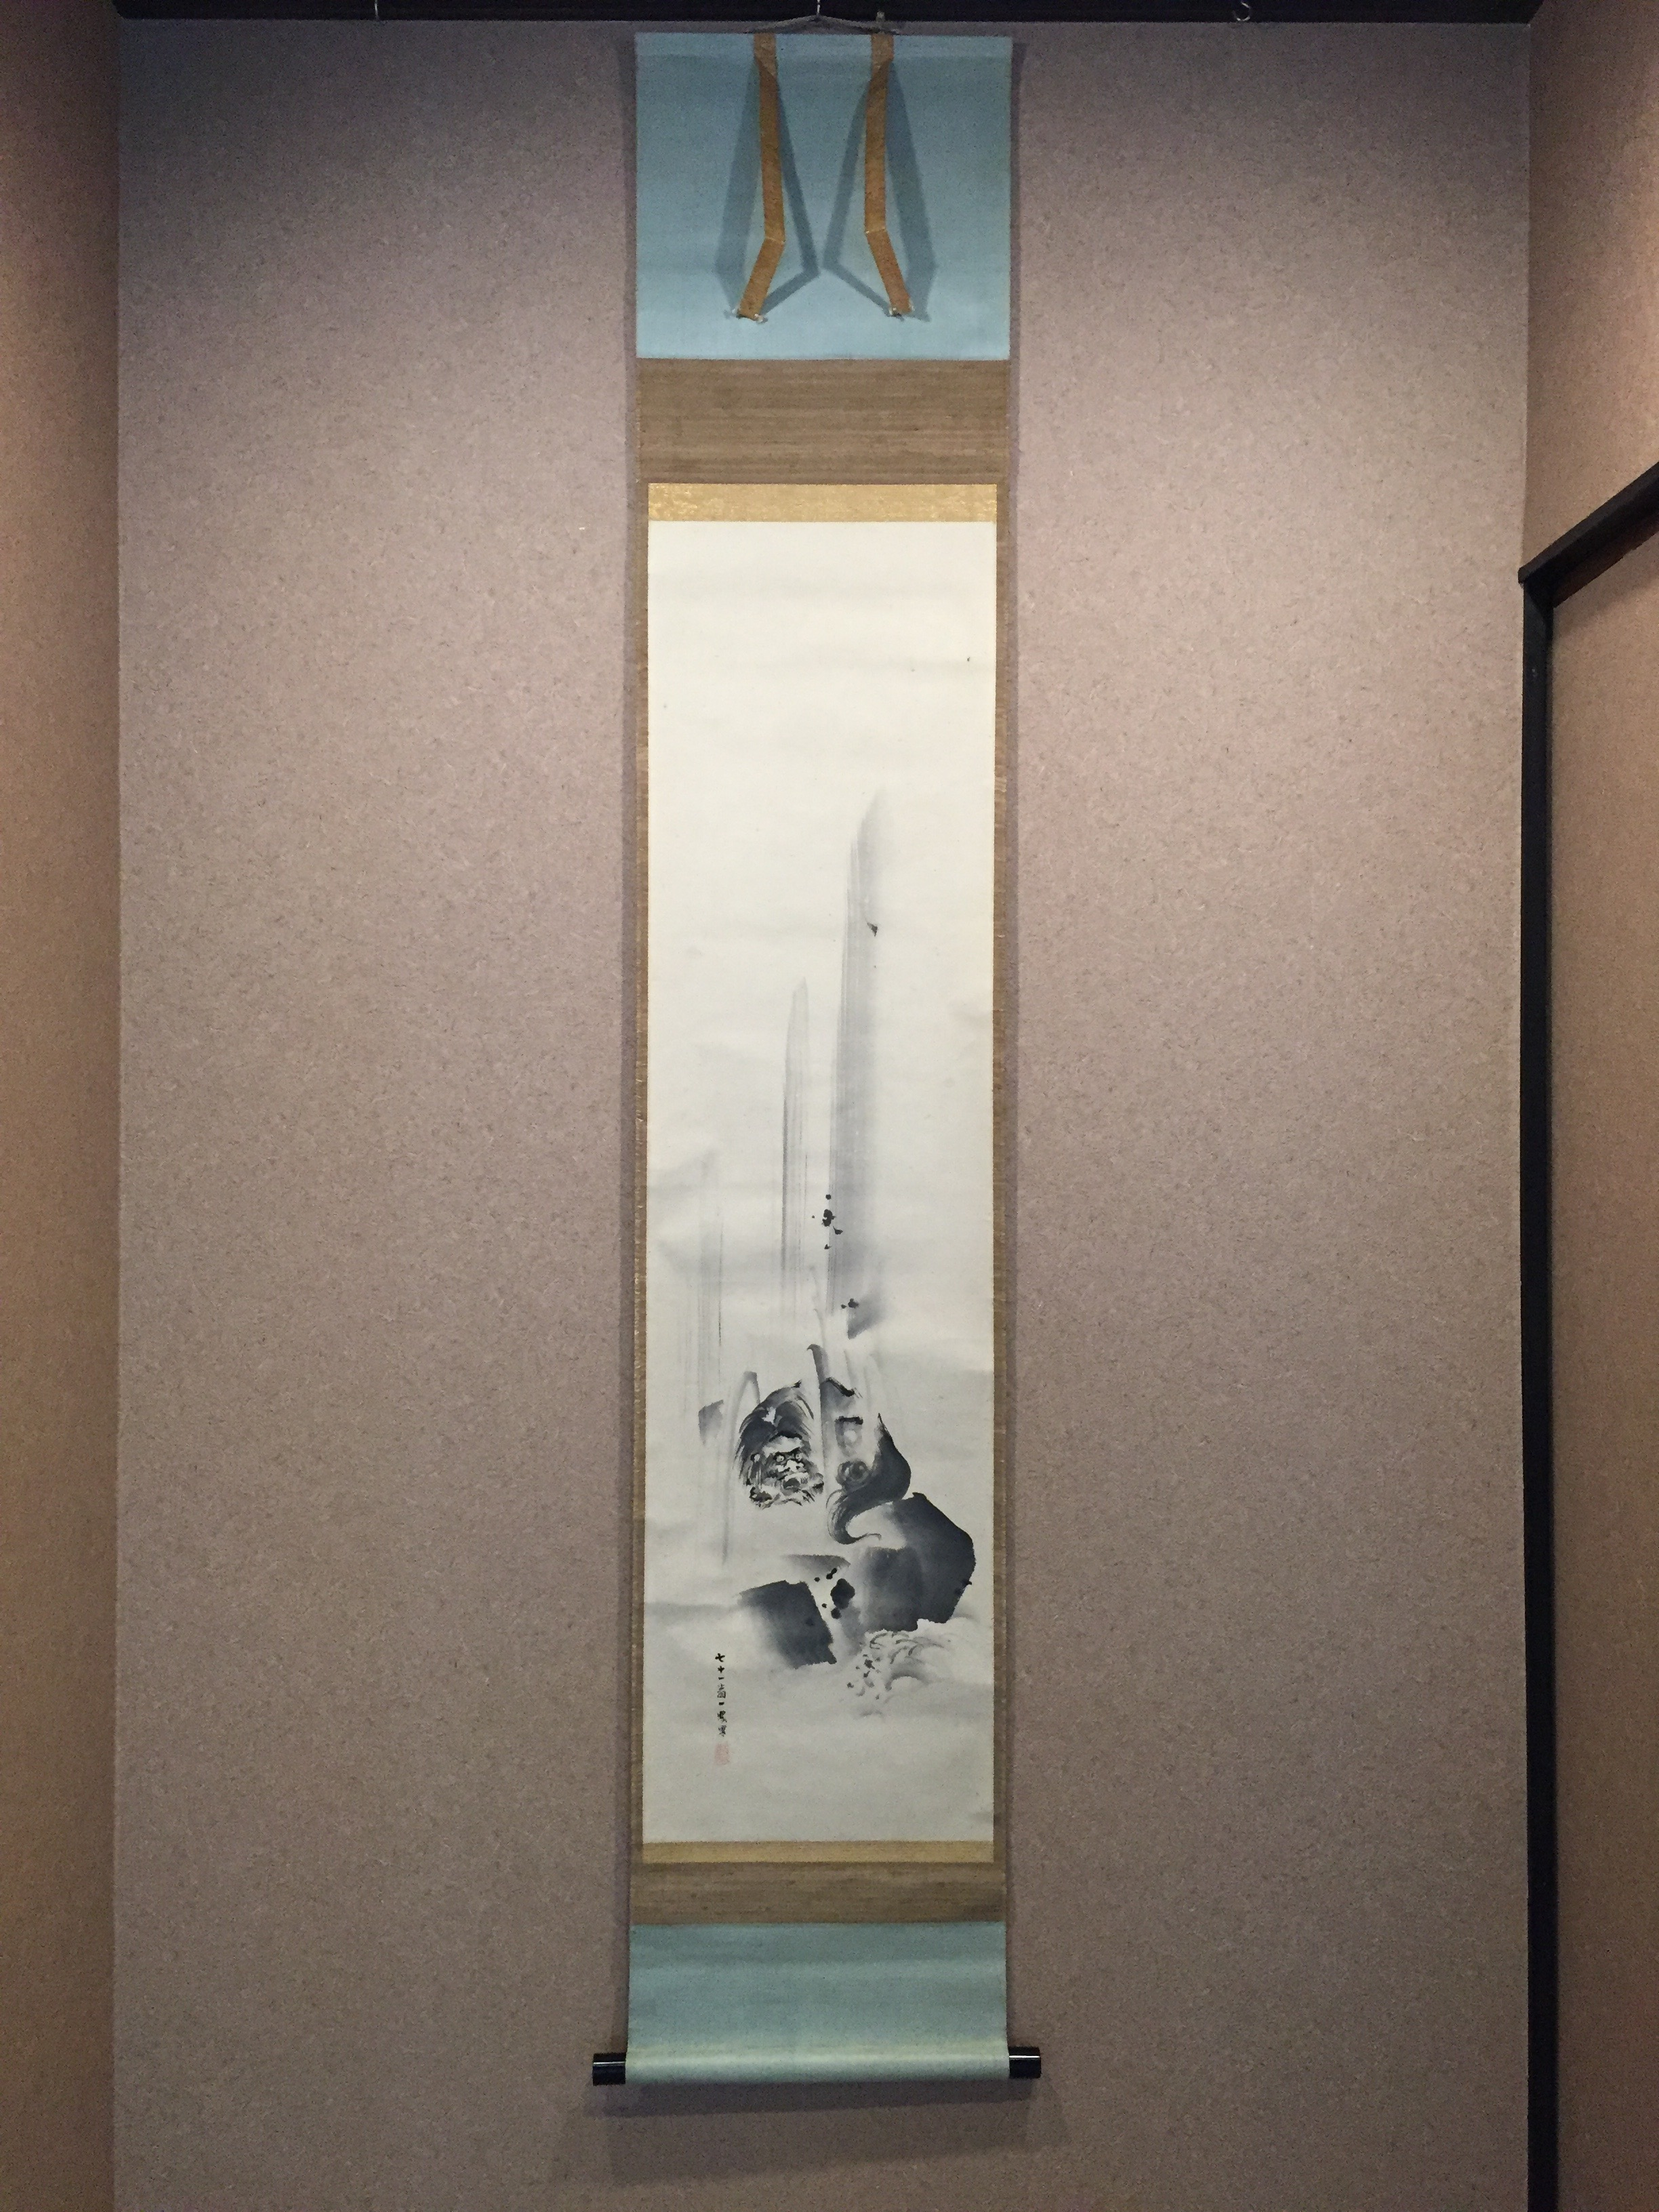 The mounting is three-layered, the preferred style for works of the Maruyama School.